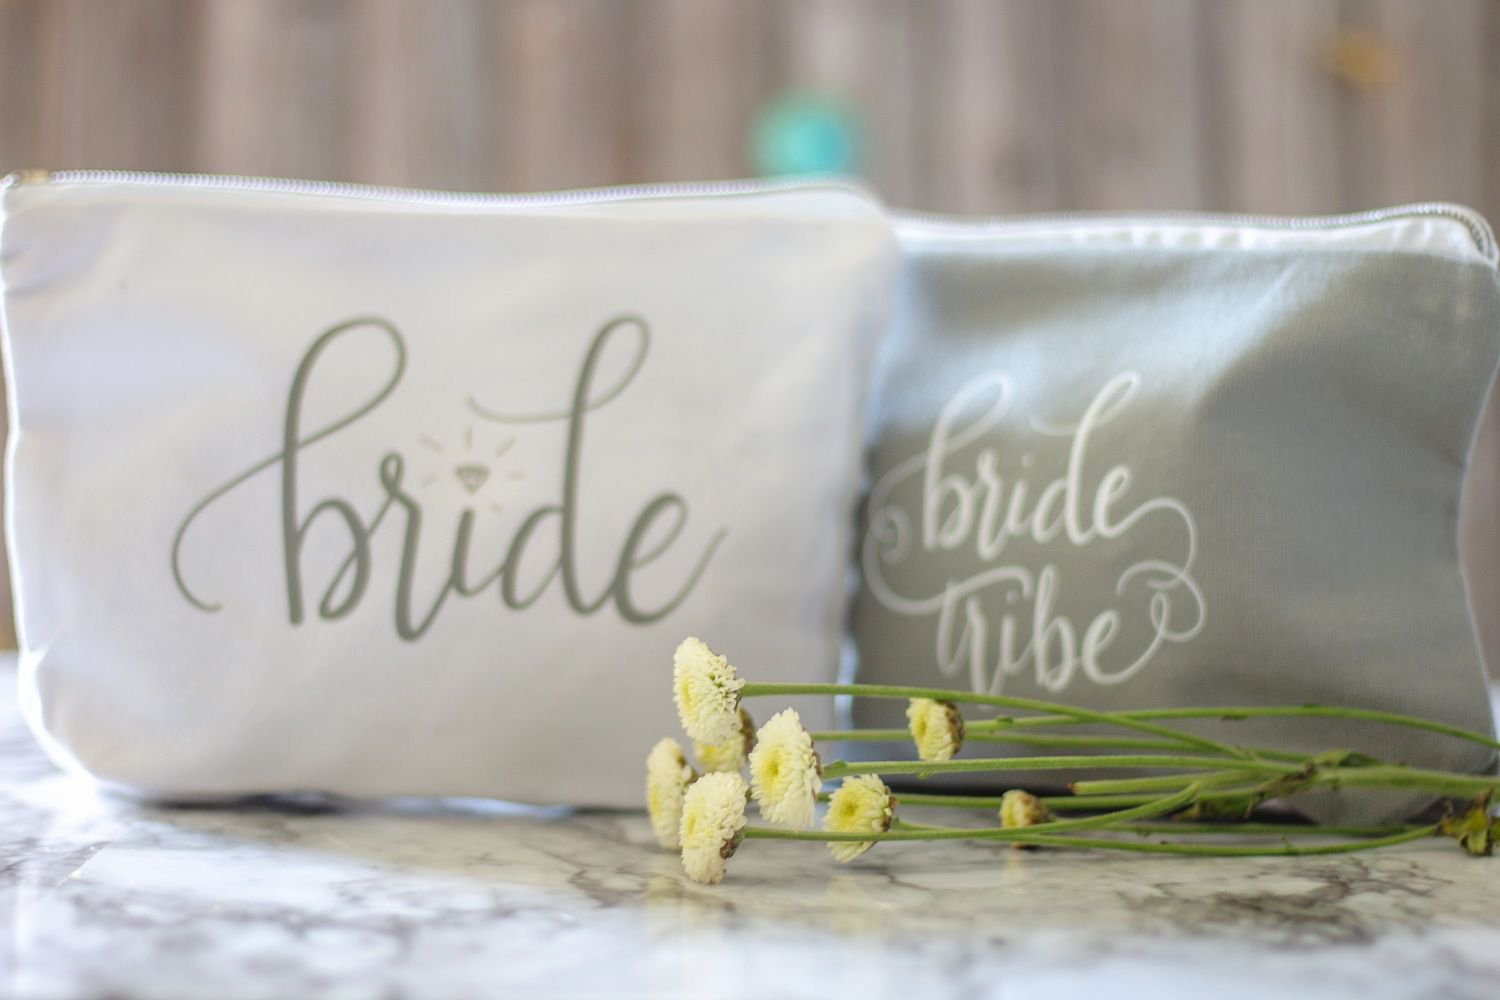 11 PIECE SET of Grey Bride Tribe and Bride Canvas Makeup Bags for Bachelorette Parties, Weddings and Bridal Showers!